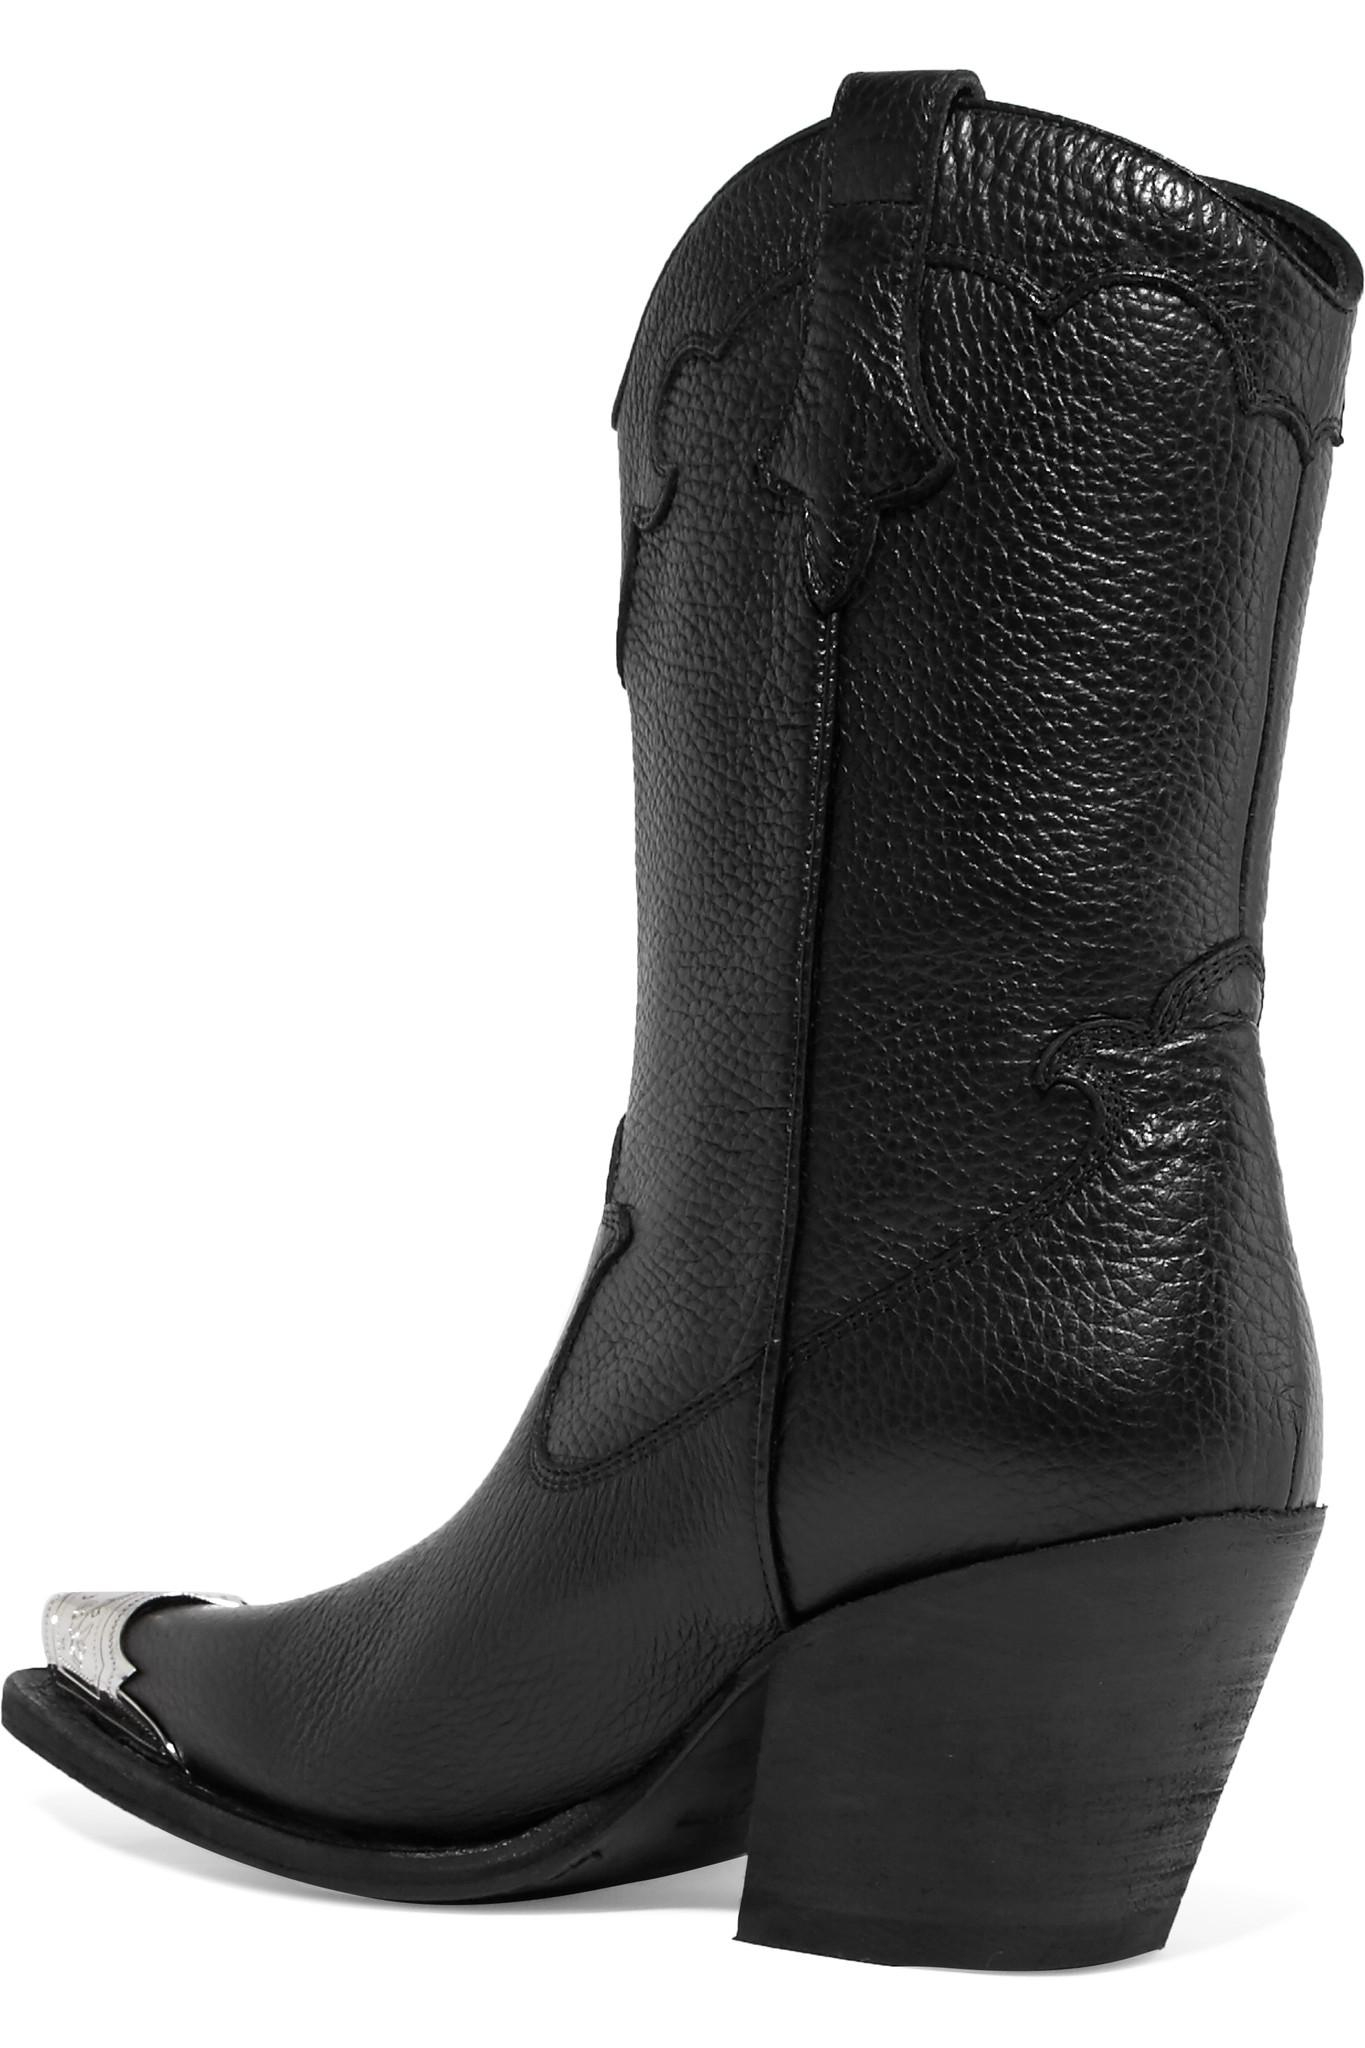 McQ Tammy Embellished Textured-leather Ankle Boots in Black